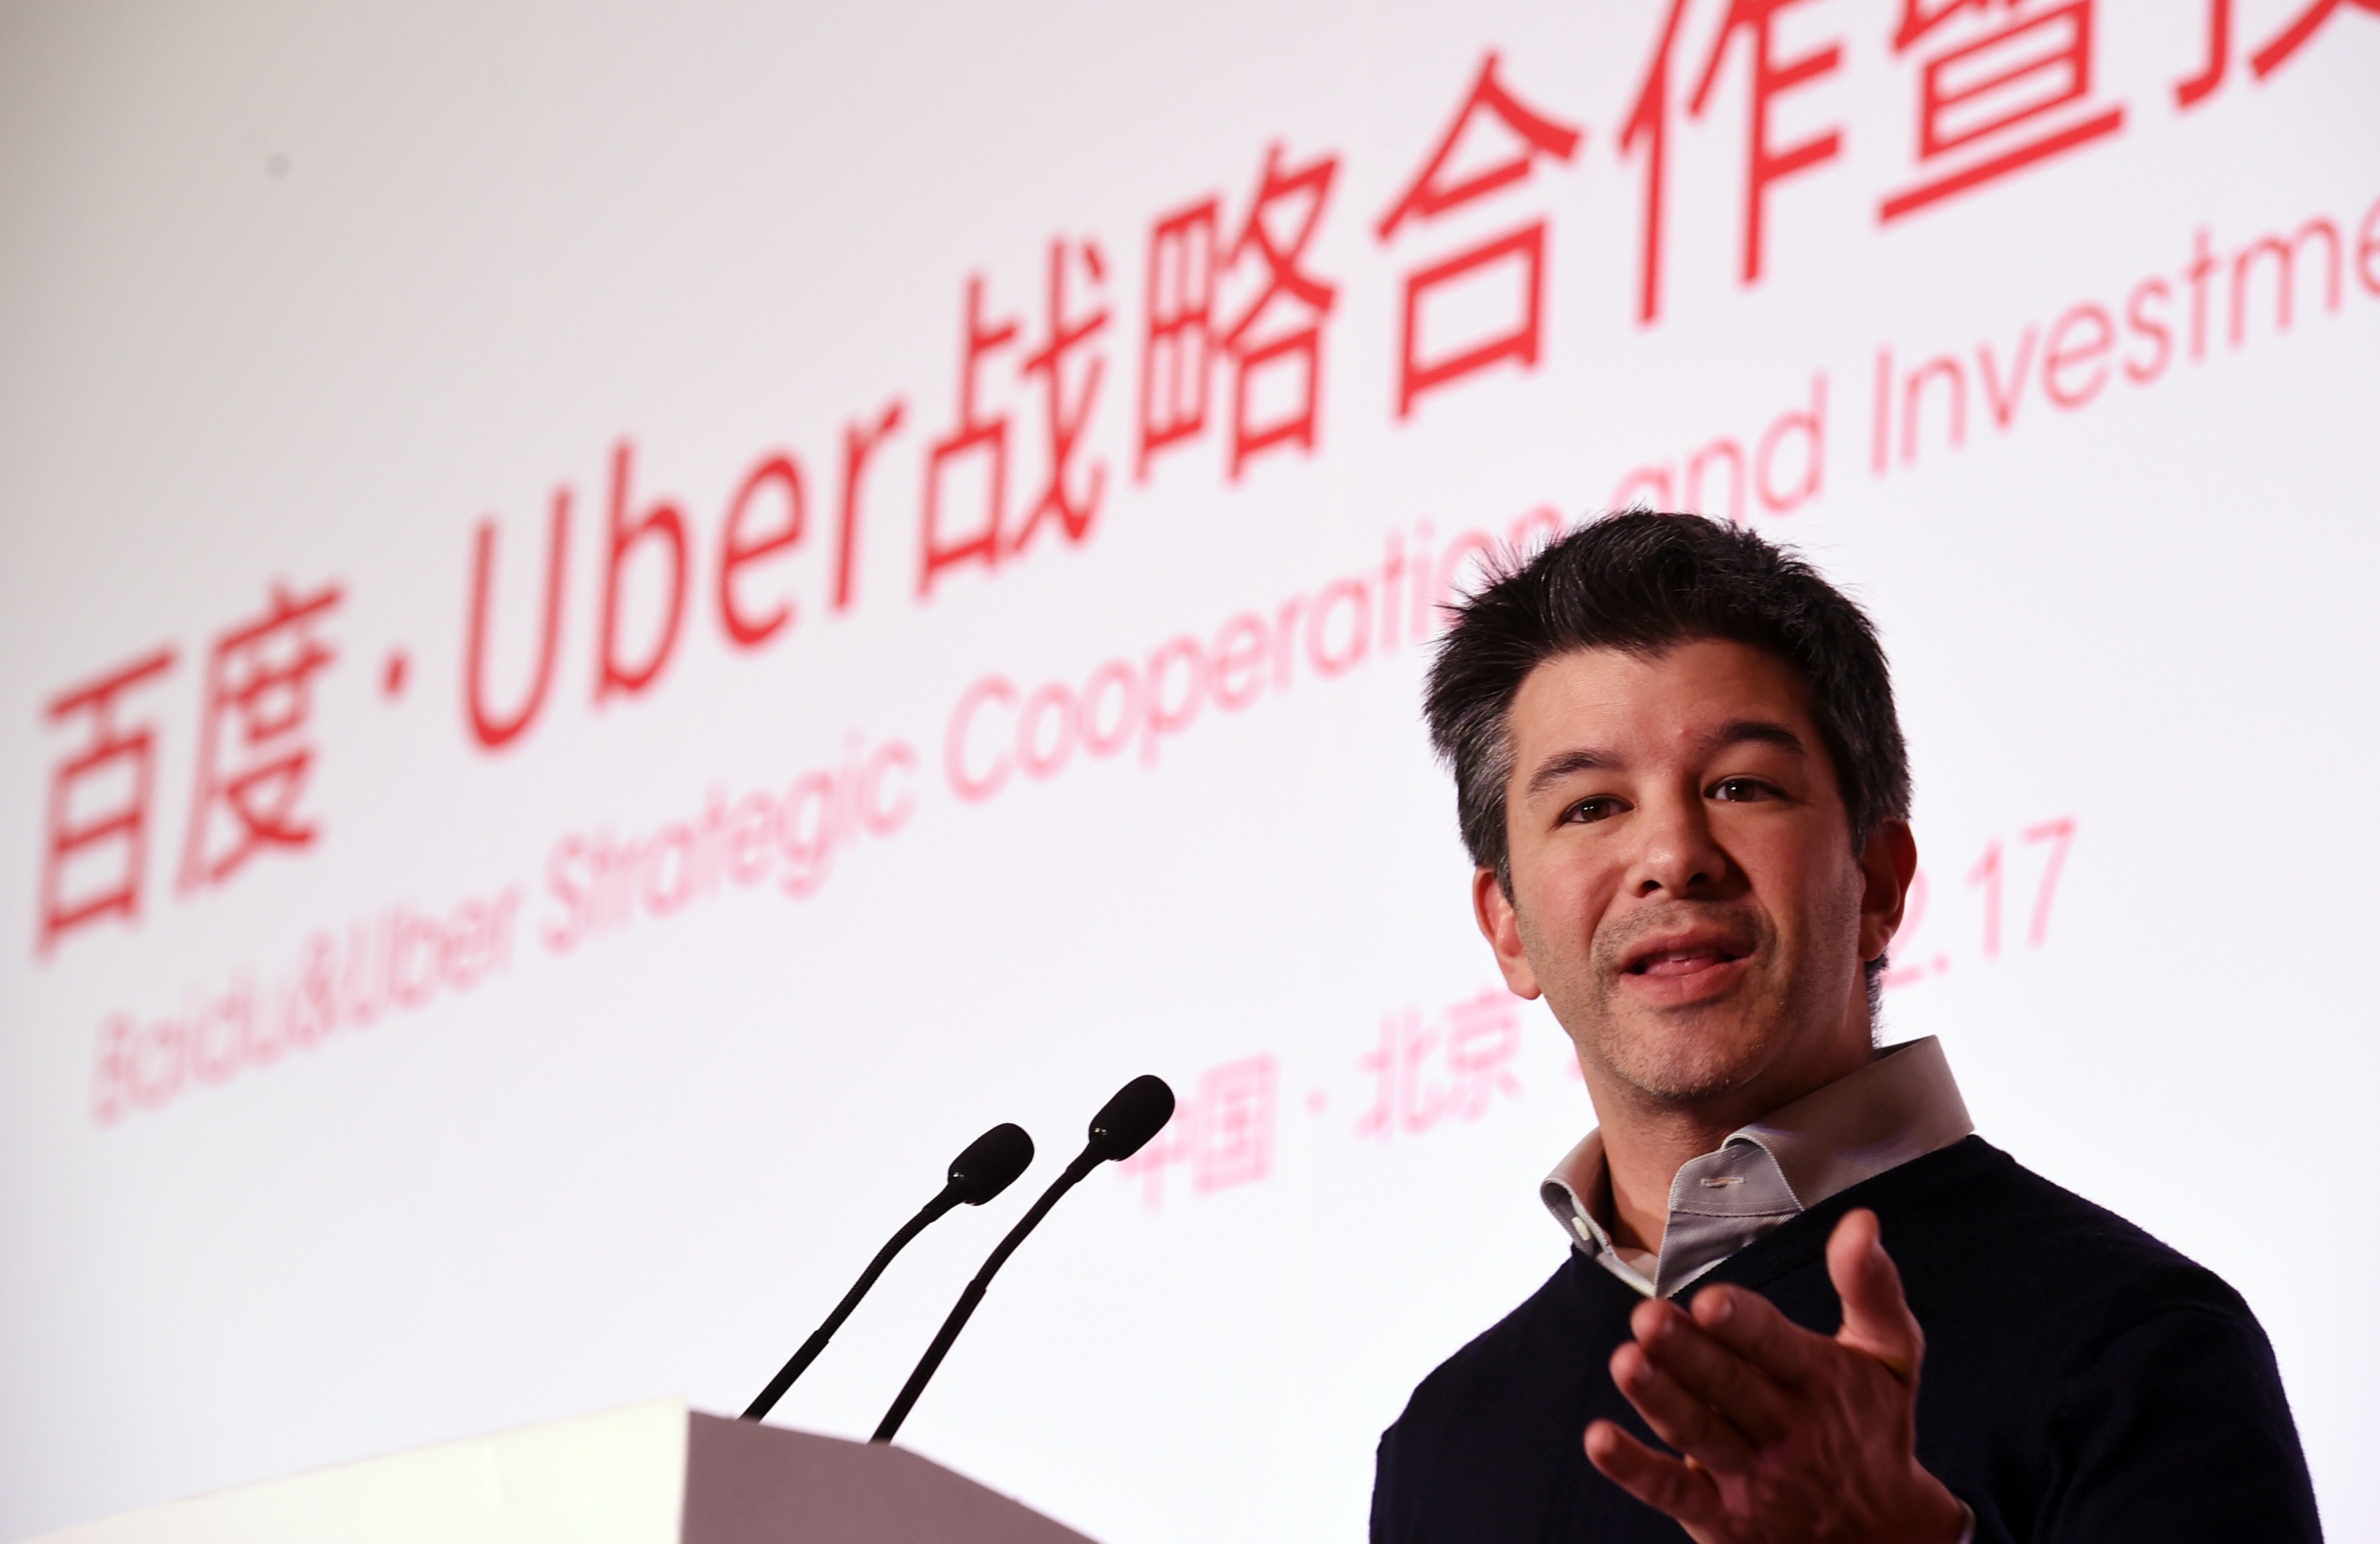 Uber CEO Travis Kalanick speaks at a ceremony at the Baidu headquarters in Beijing on December 17, 2014.